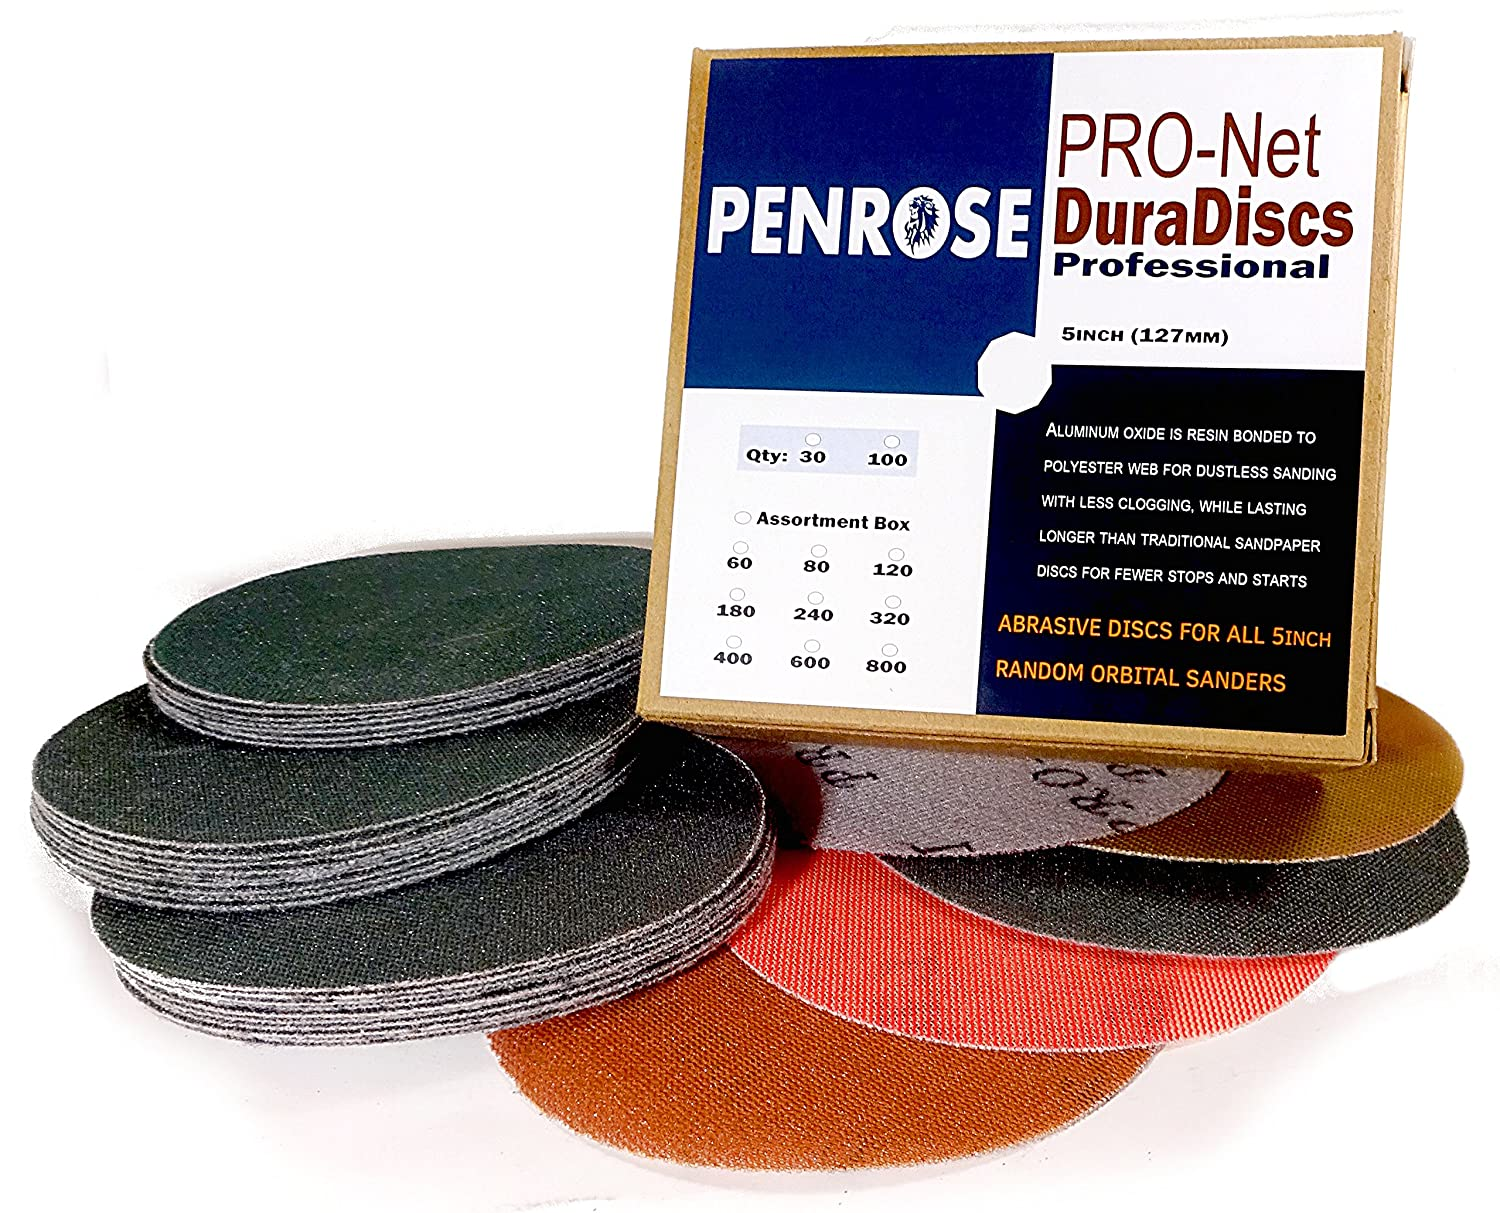 5 Inch Sanding Discs Hook and Loop Truly Dustless and Durable 30 Pack for Random Orbital Sanders Fits 8 Hole and 5 Hole Penrose PRO-Net DuraDiscs Professional 320 Grit